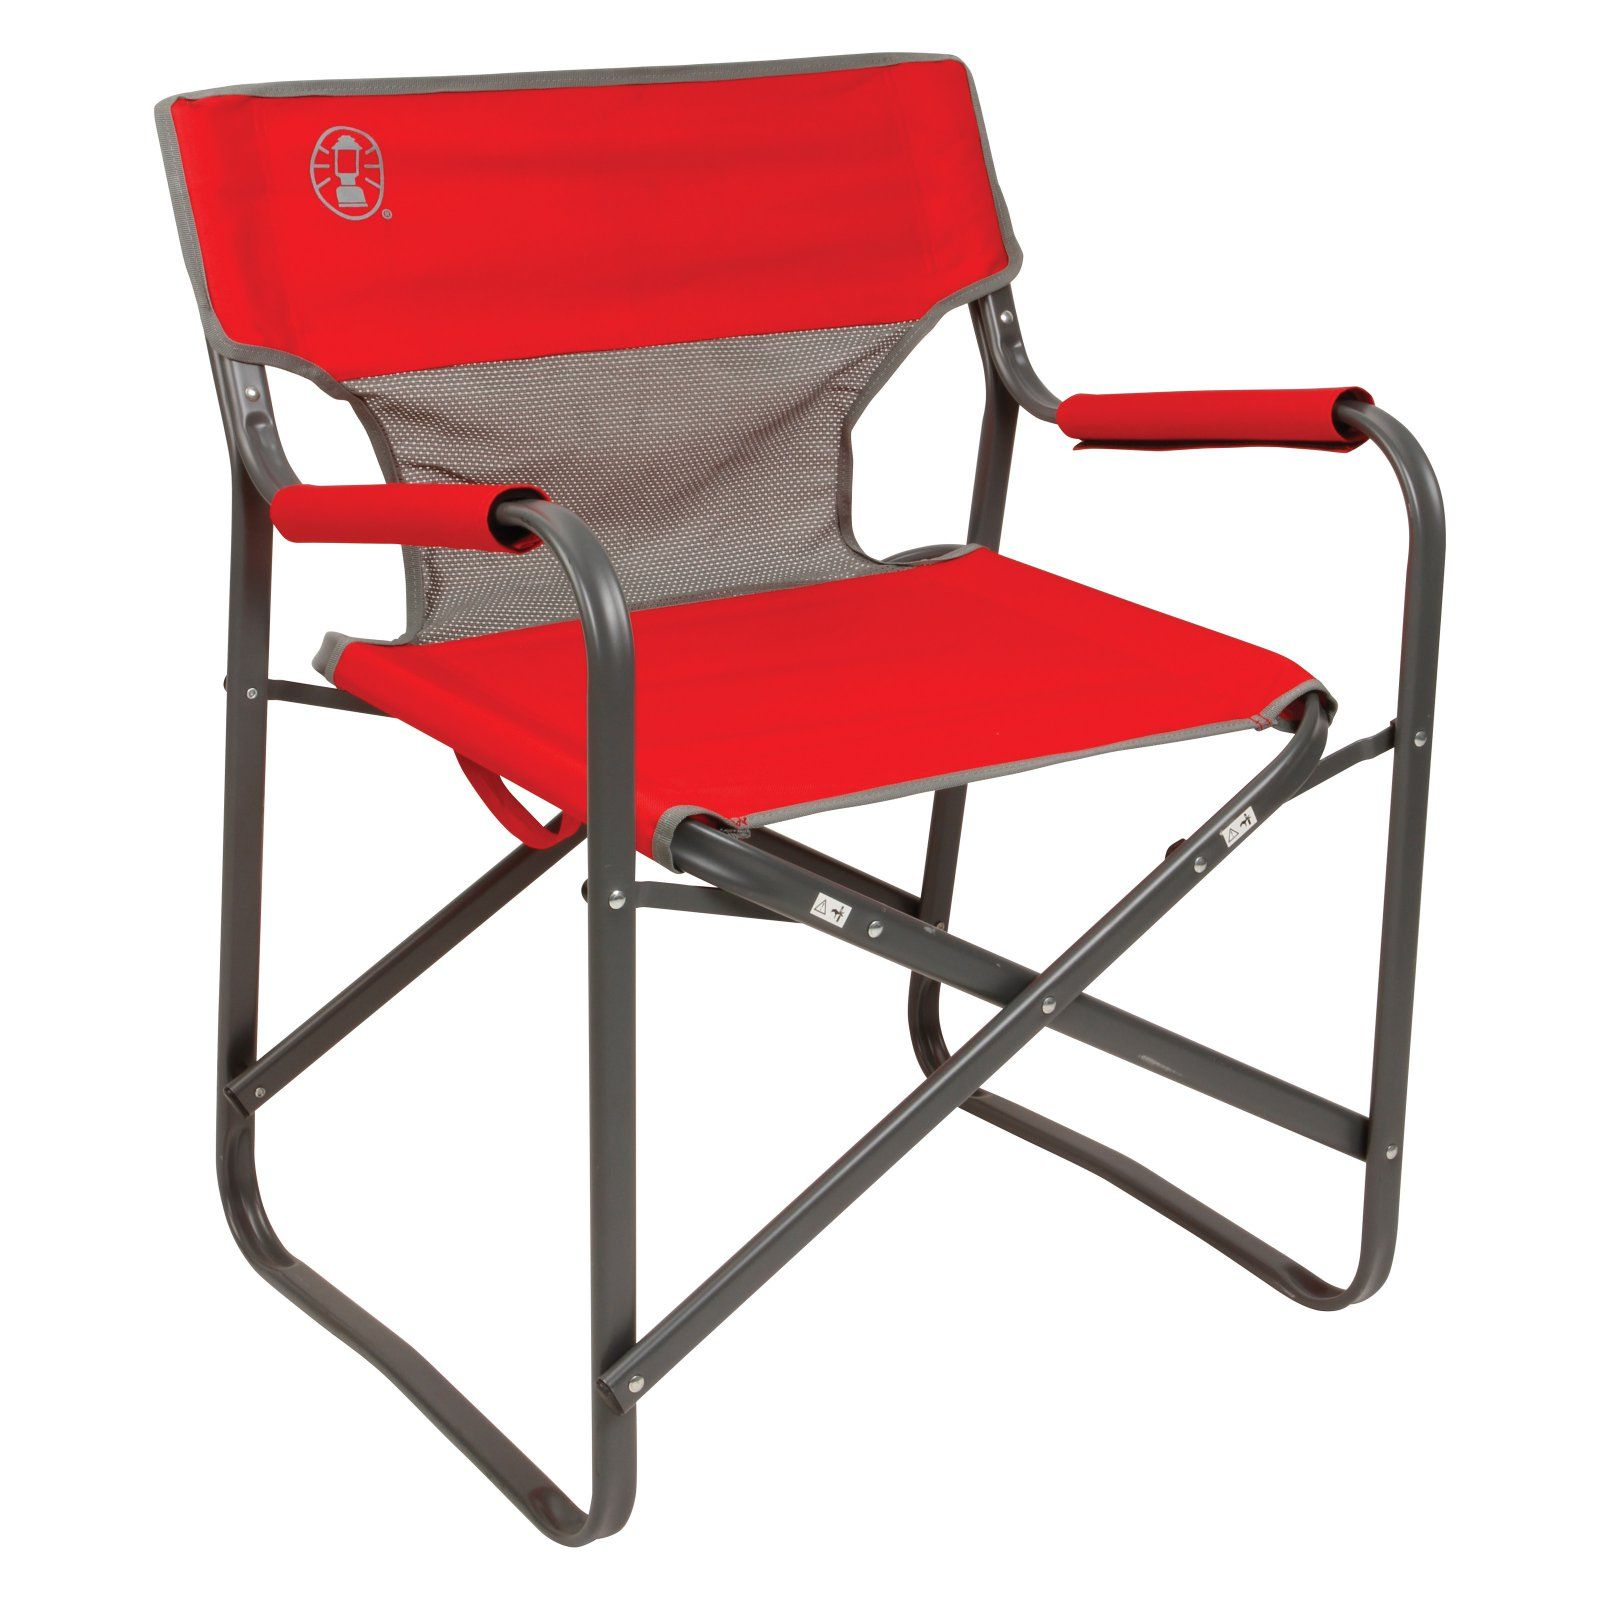 Outdoor Coleman Outpost Breeze Deck Chair In 2019 Products